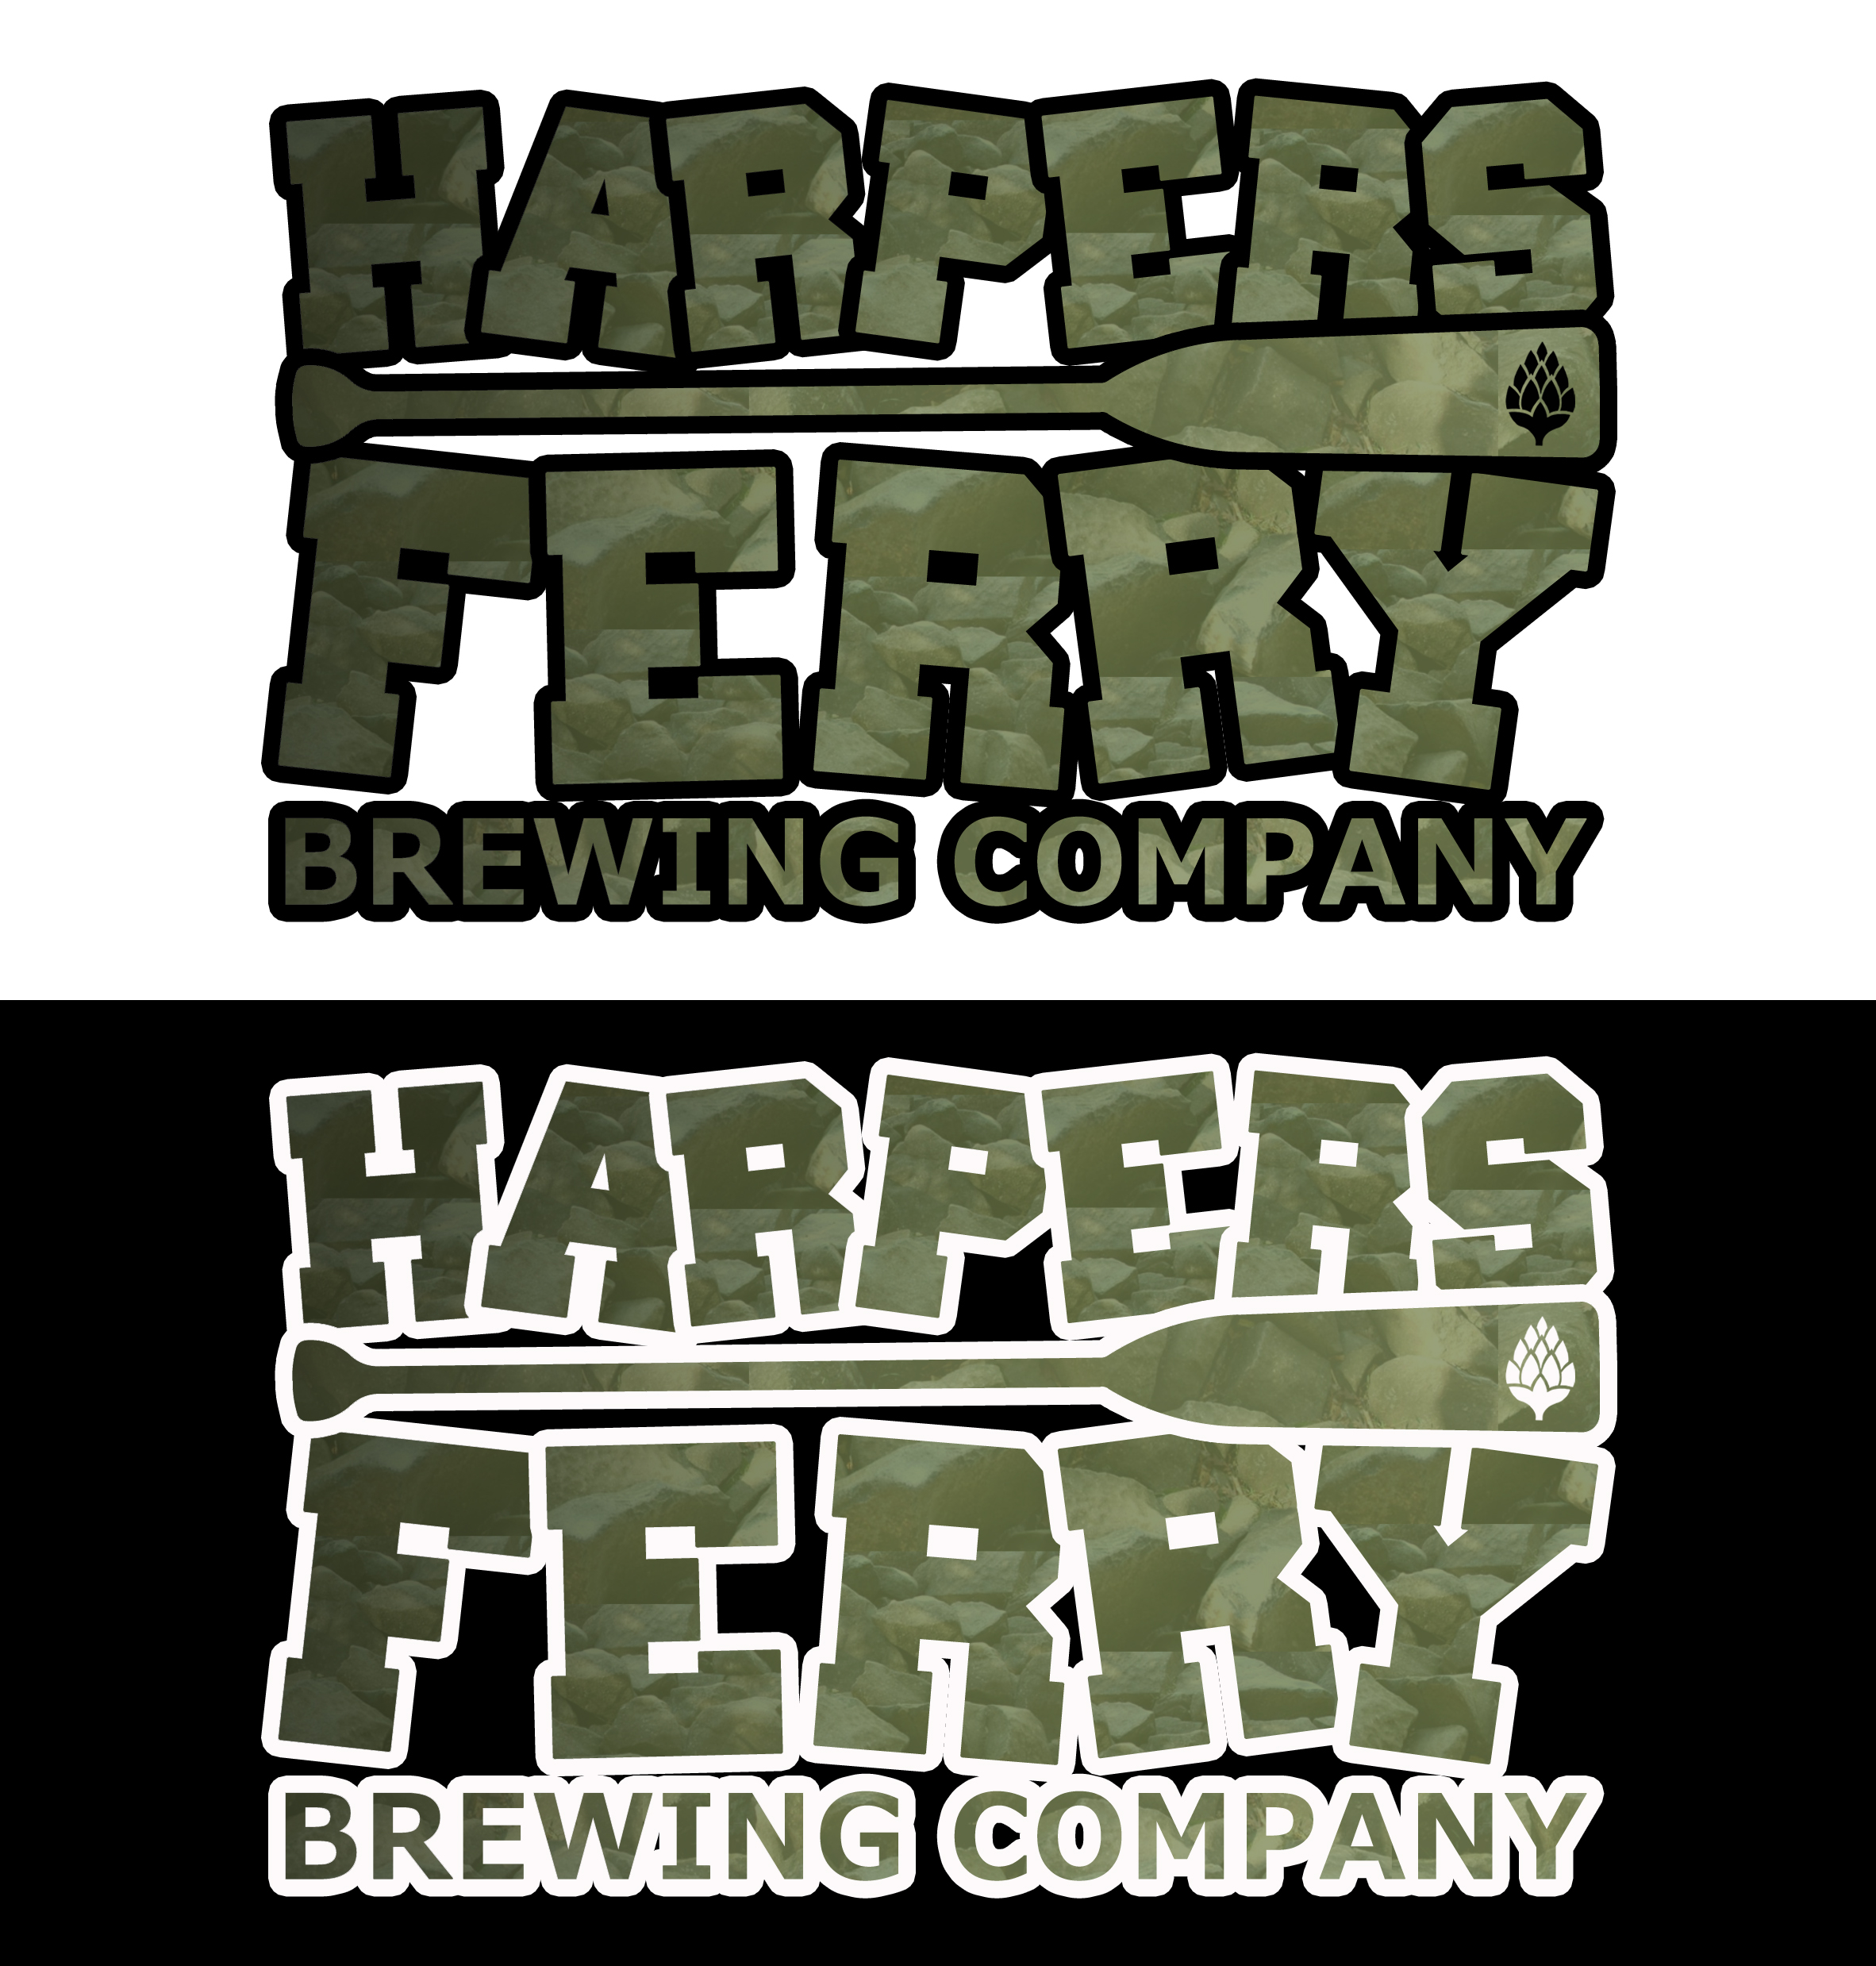 Logo Design by JSDESIGNGROUP - Entry No. 114 in the Logo Design Contest Unique Logo Design Wanted for Harpers ferry brewing company.